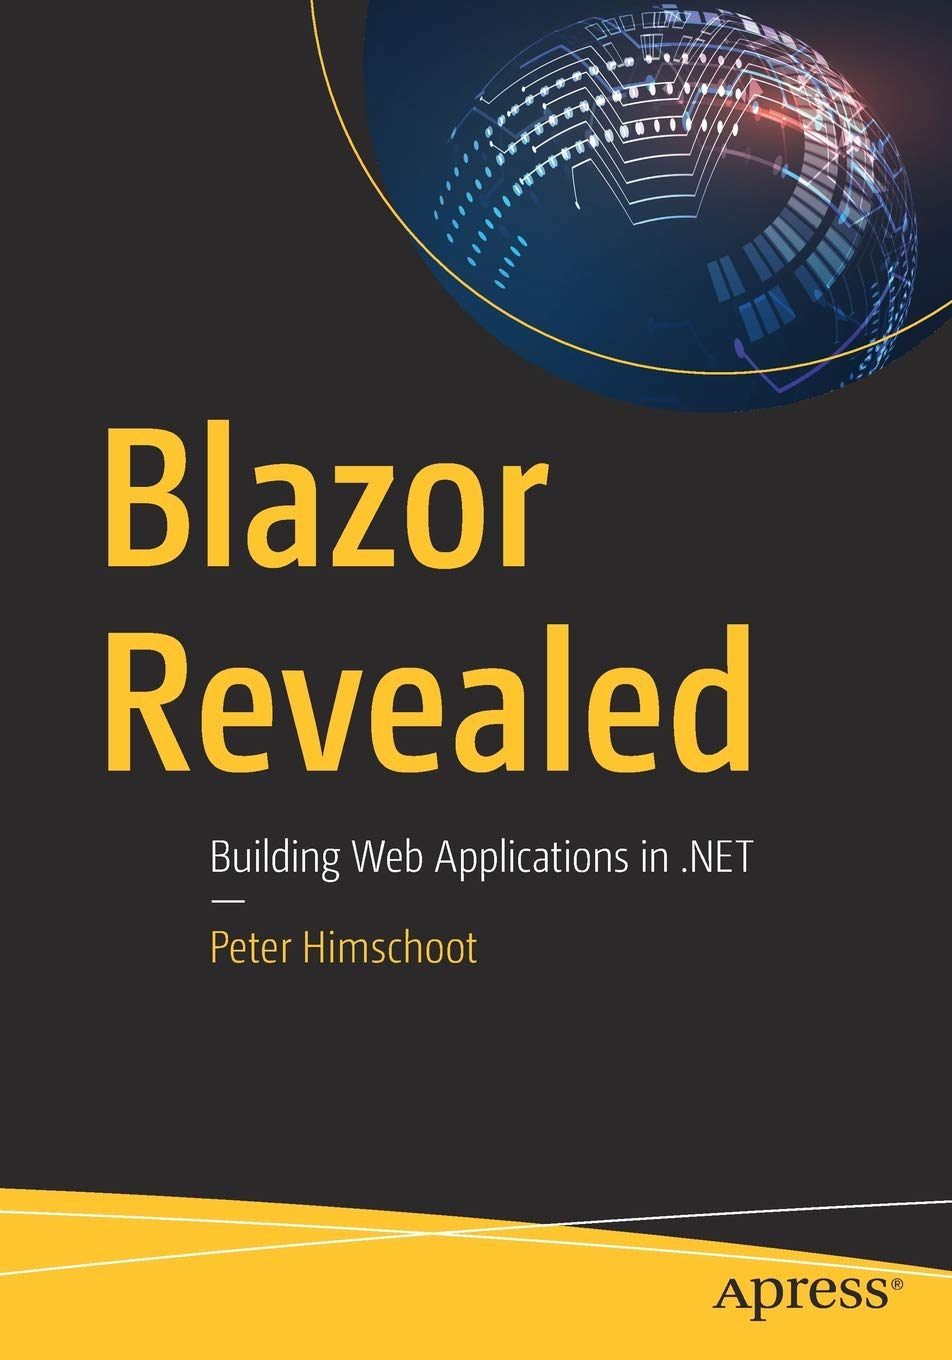 Blazor Revealed: Building Web Applications in .NET